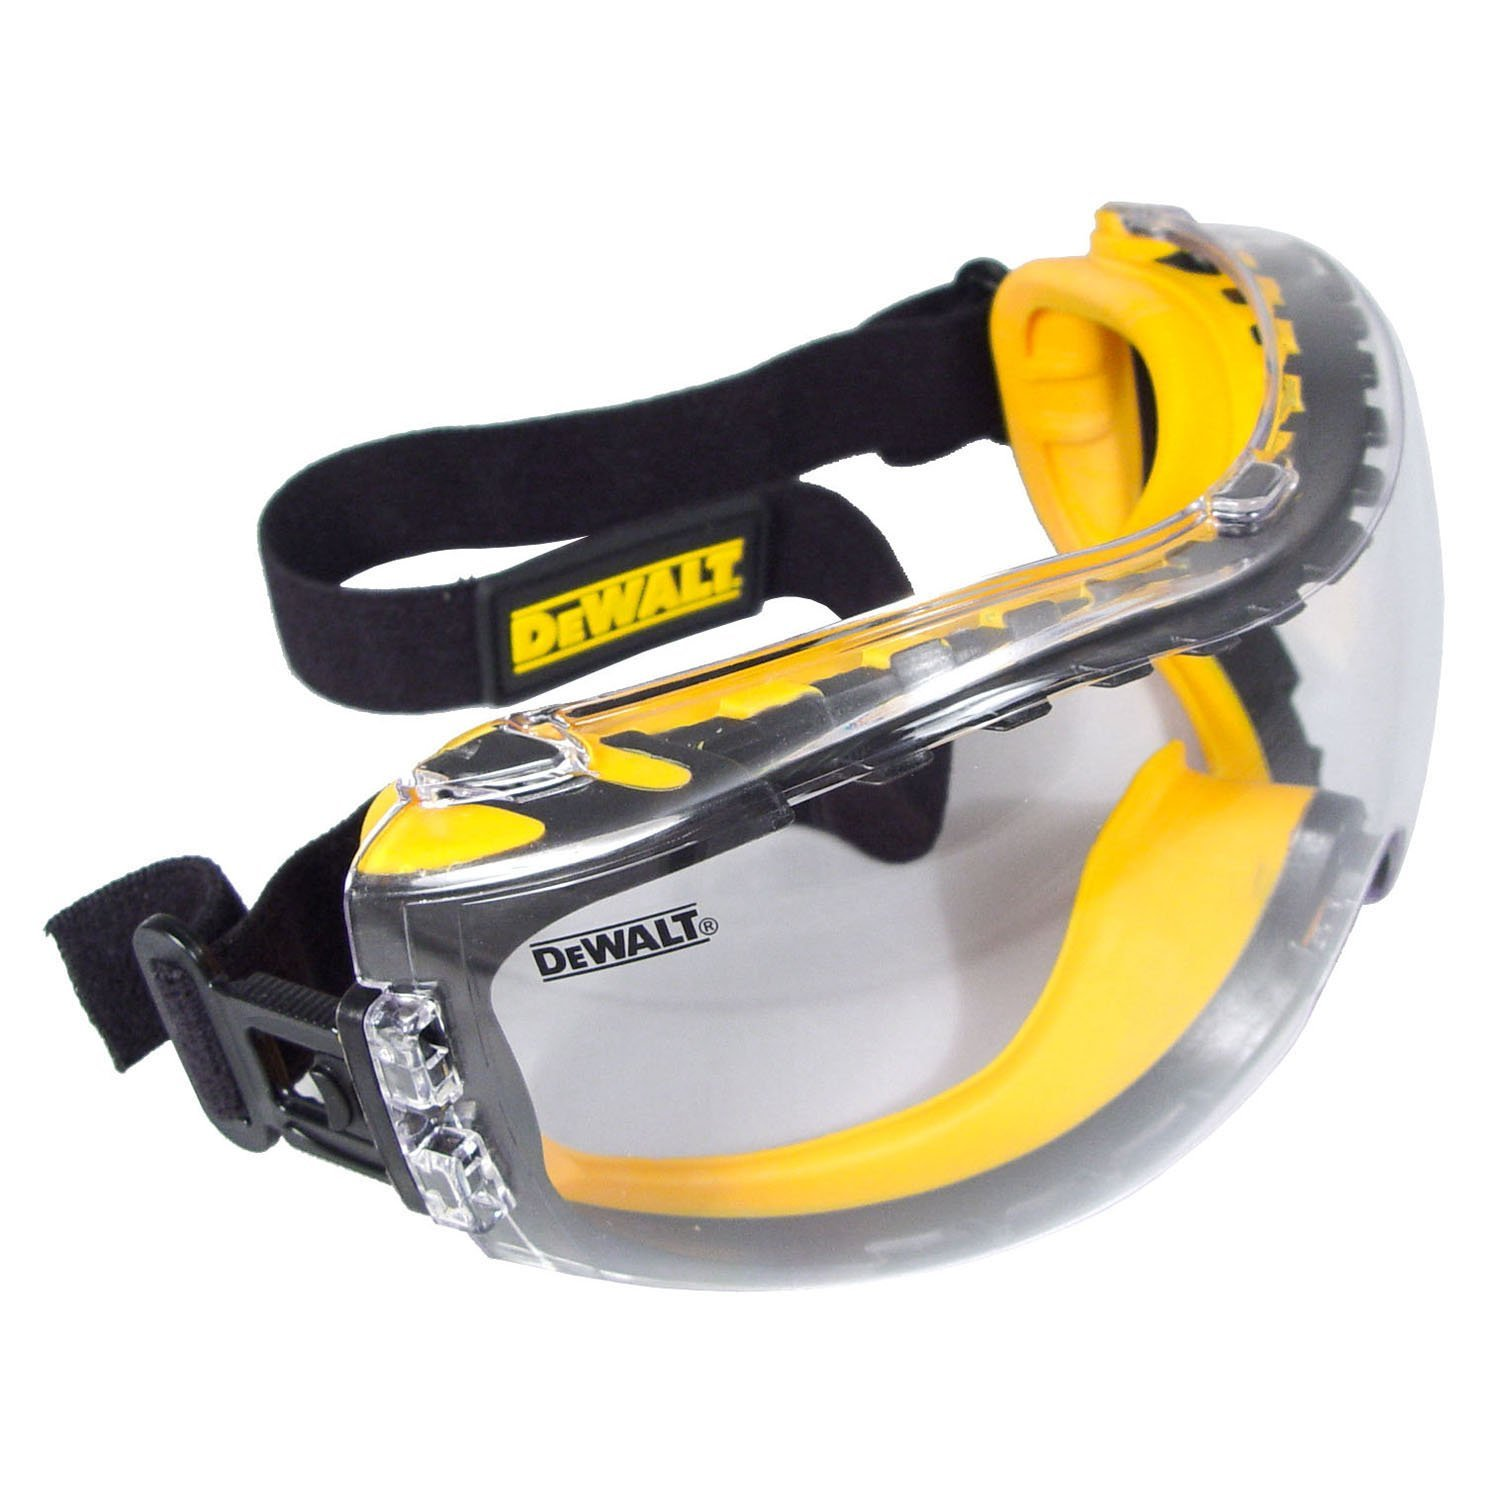 Top 10 Best Safety Glasses in 2019 - TopReviewProducts 8cae54b2f11a